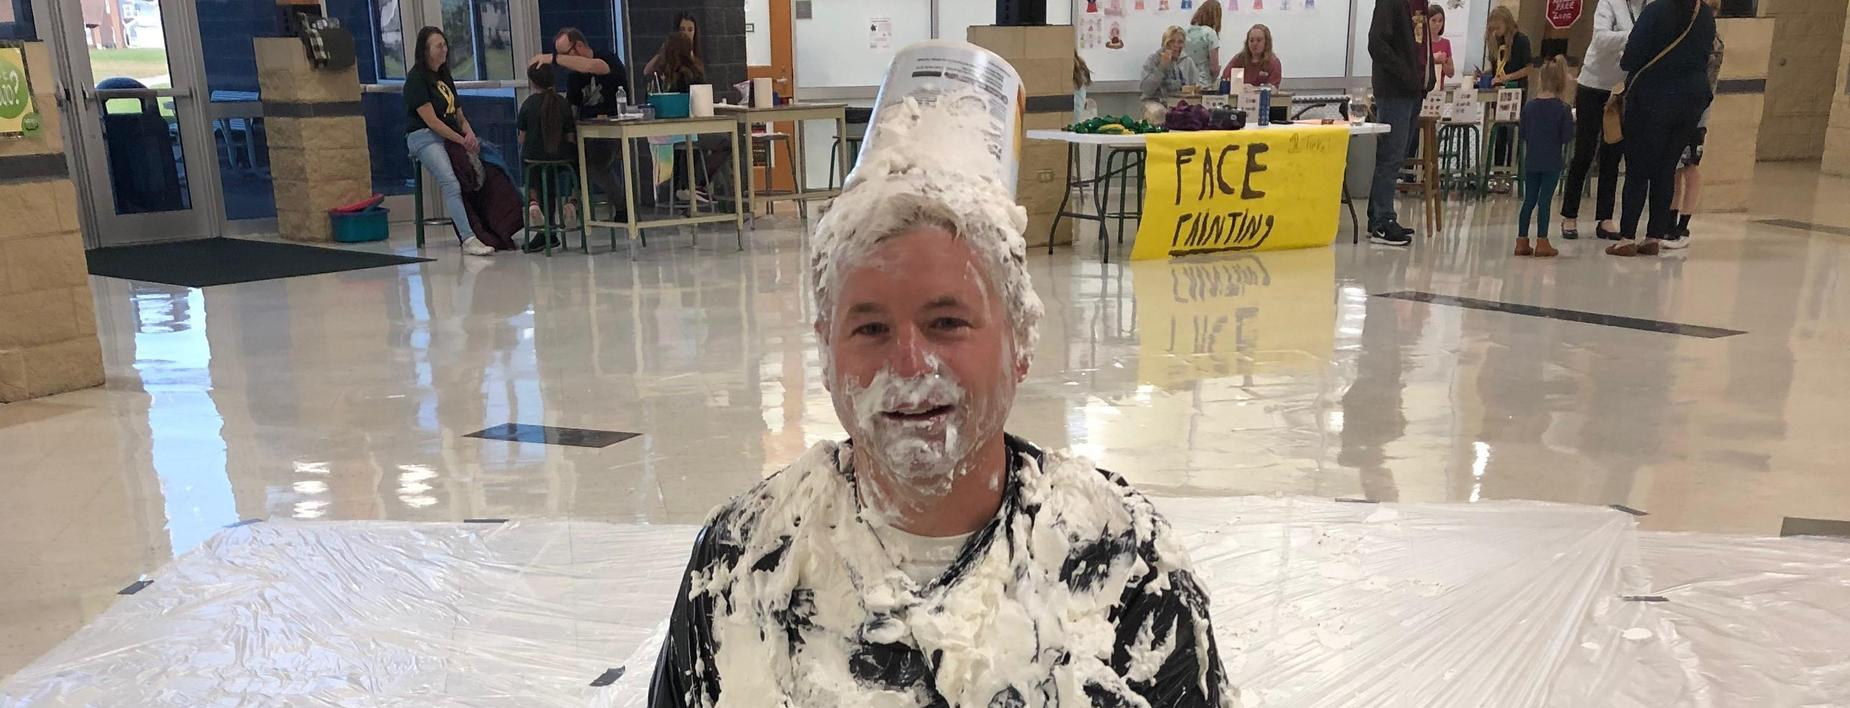 Mr Larson took a few pies to the face